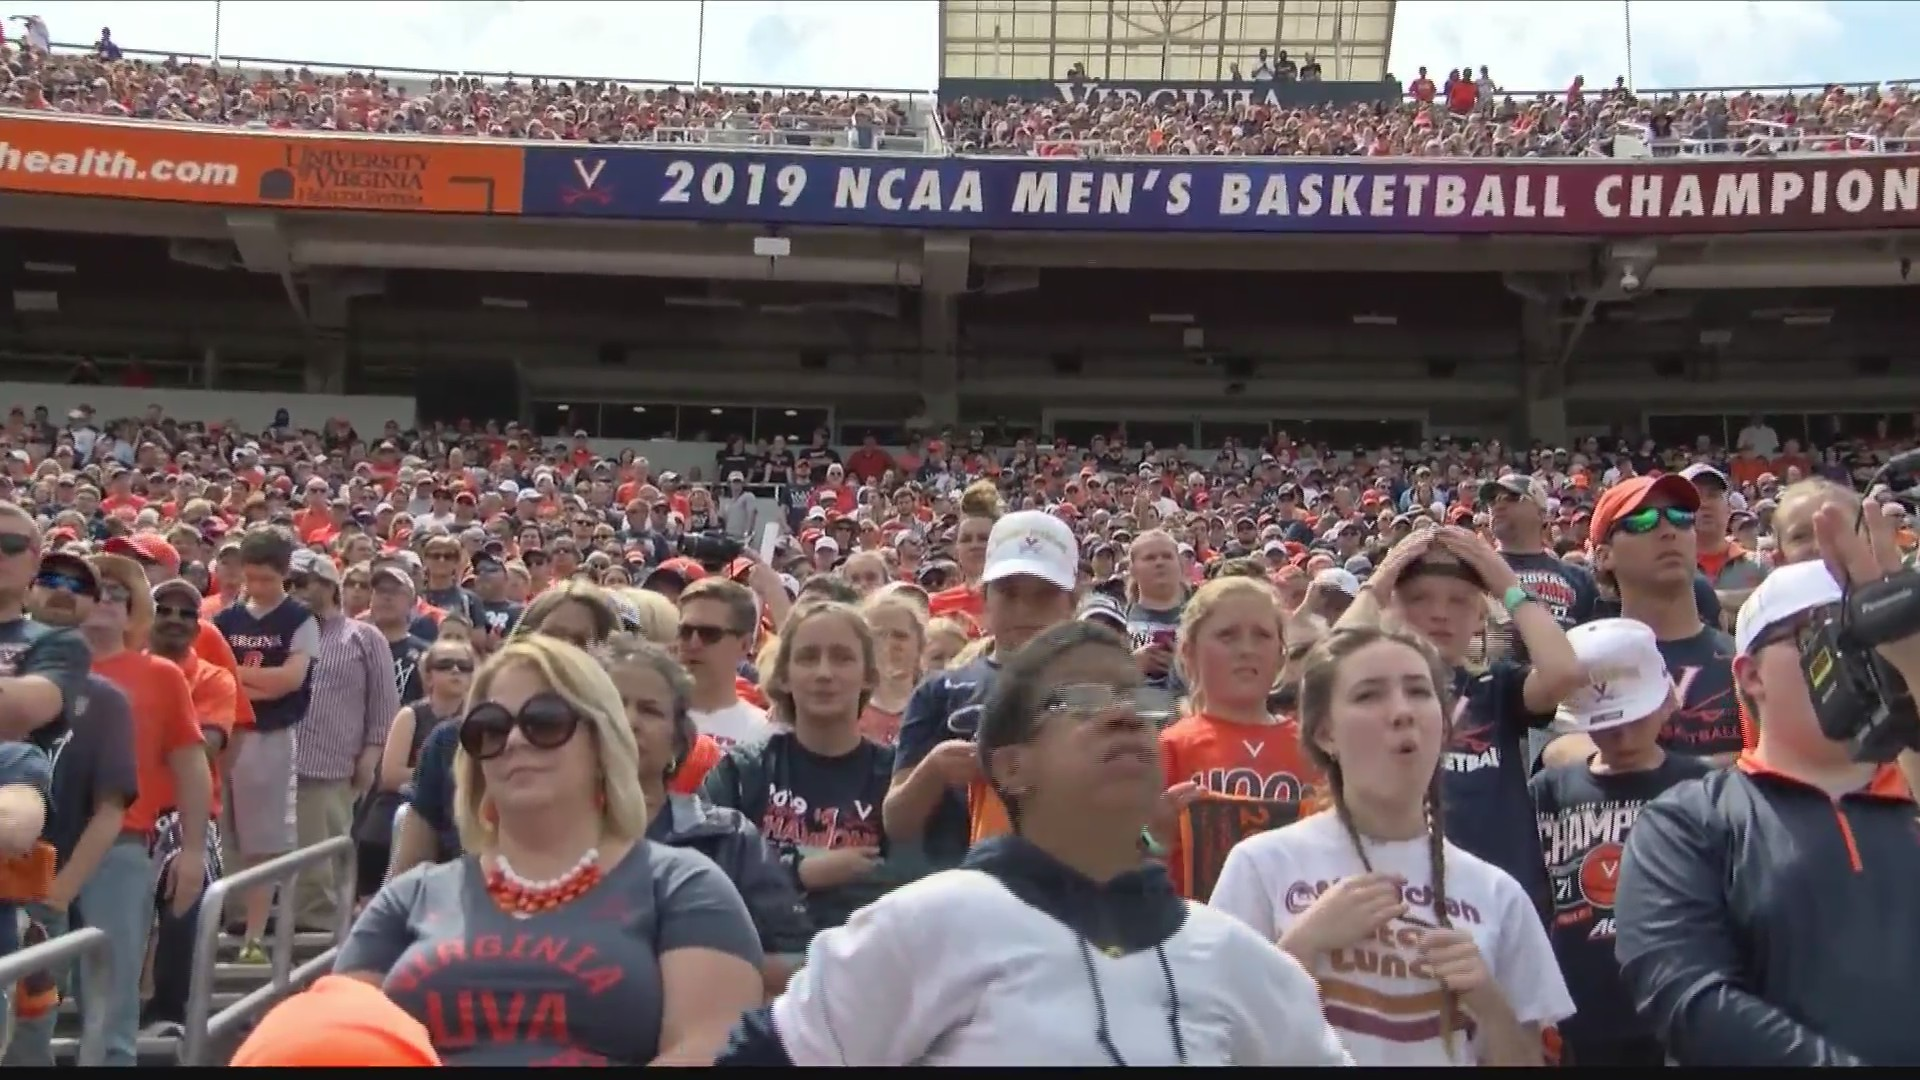 Sights and sounds from UVA's National Championship Celebration